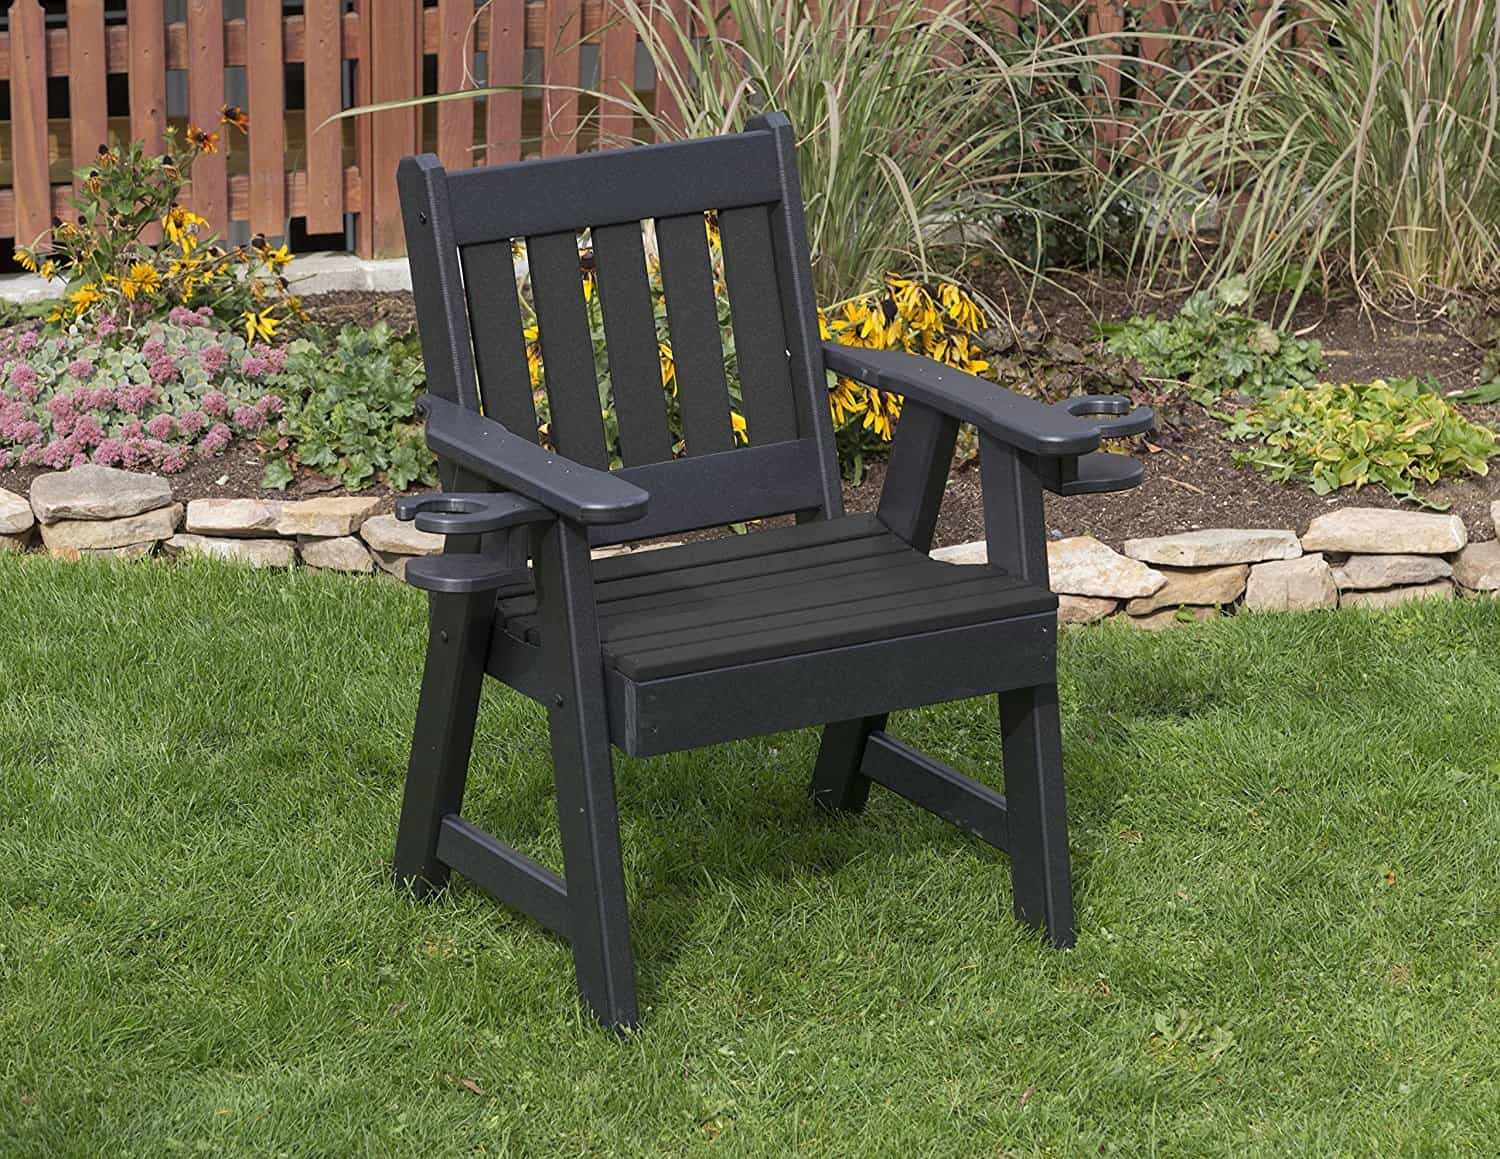 POLY LUMBER MISSION PolyTuf HDPE AMISH CRAFTED 2 FT Cupholder Chair